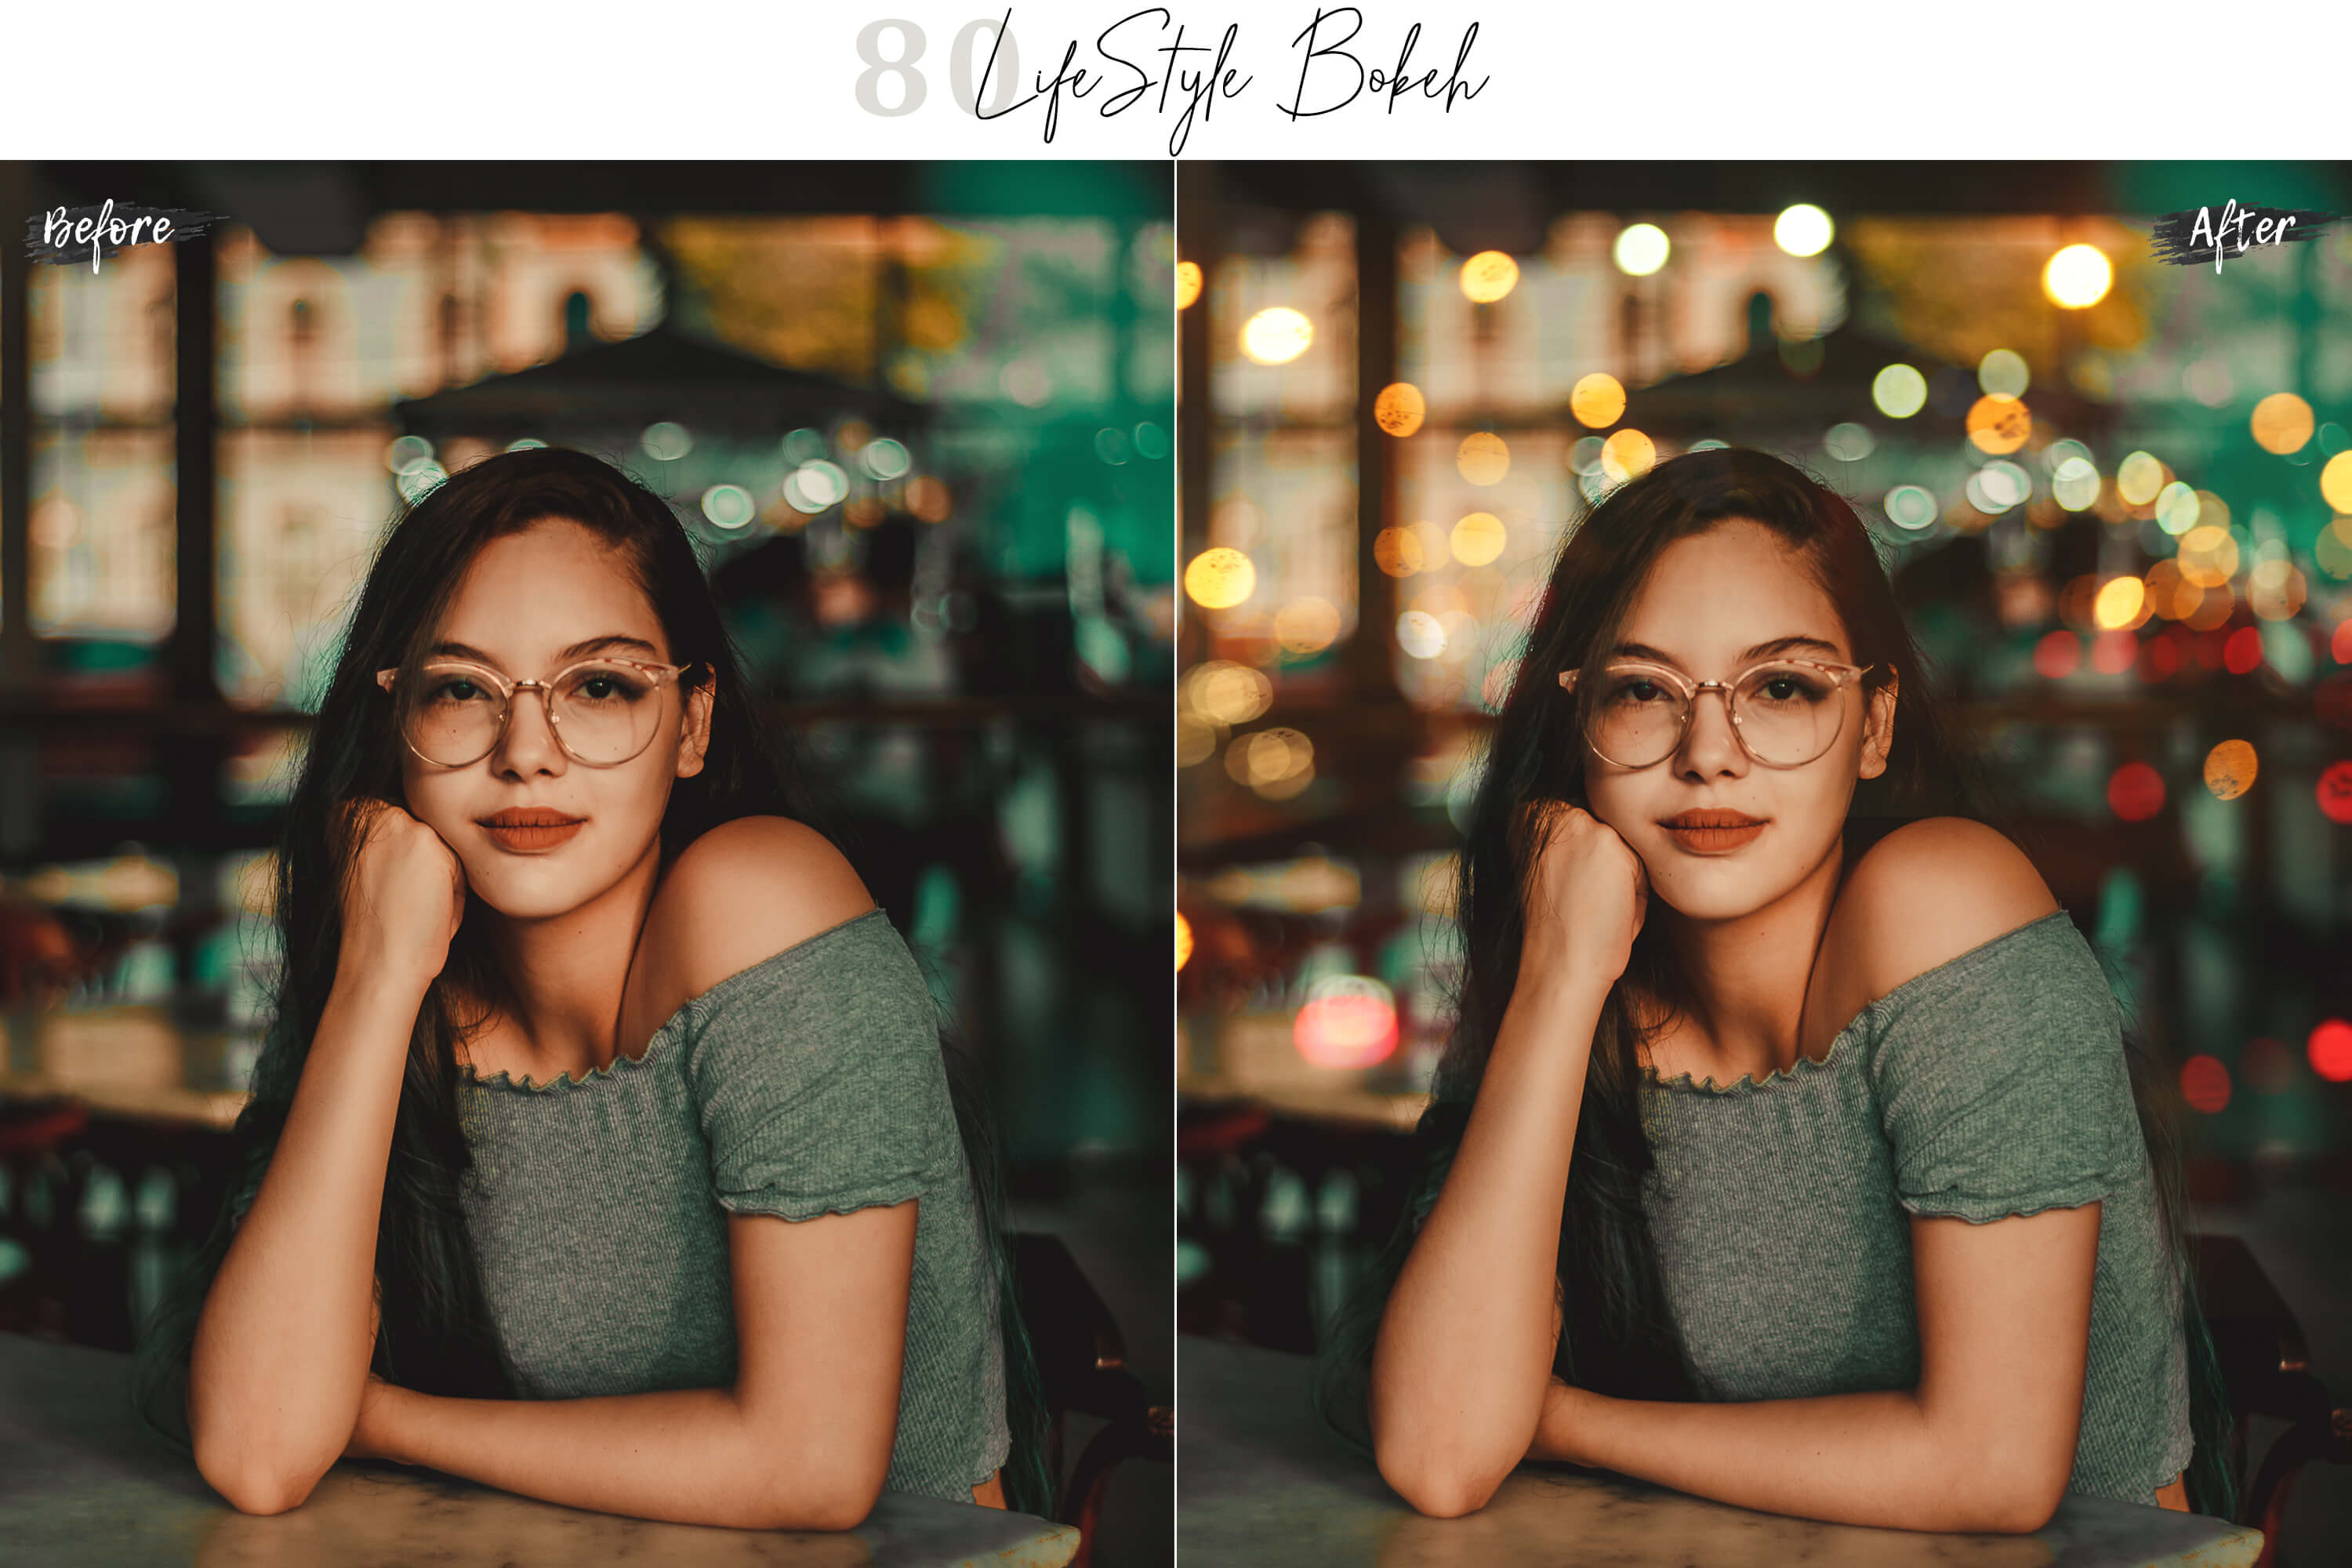 80 Life Style Bokeh Pack 02 lights Effect Photo Overlays example image 2